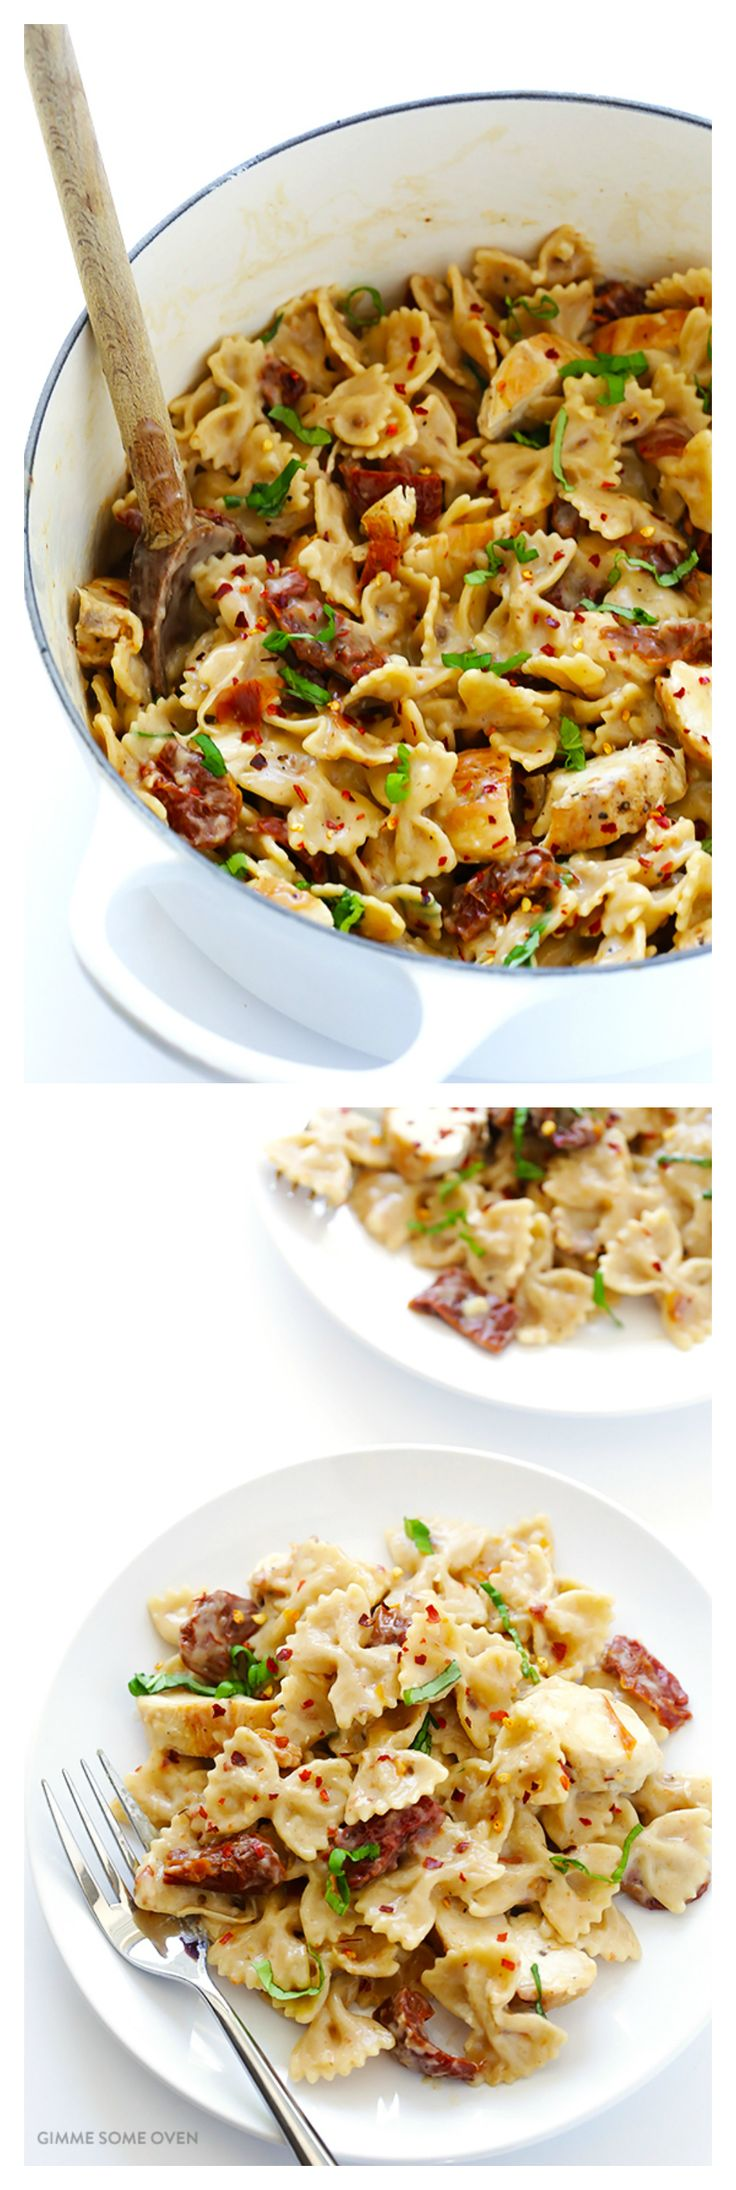 Creamy Pasta with Chicken & Sun-Dried Tomatoes